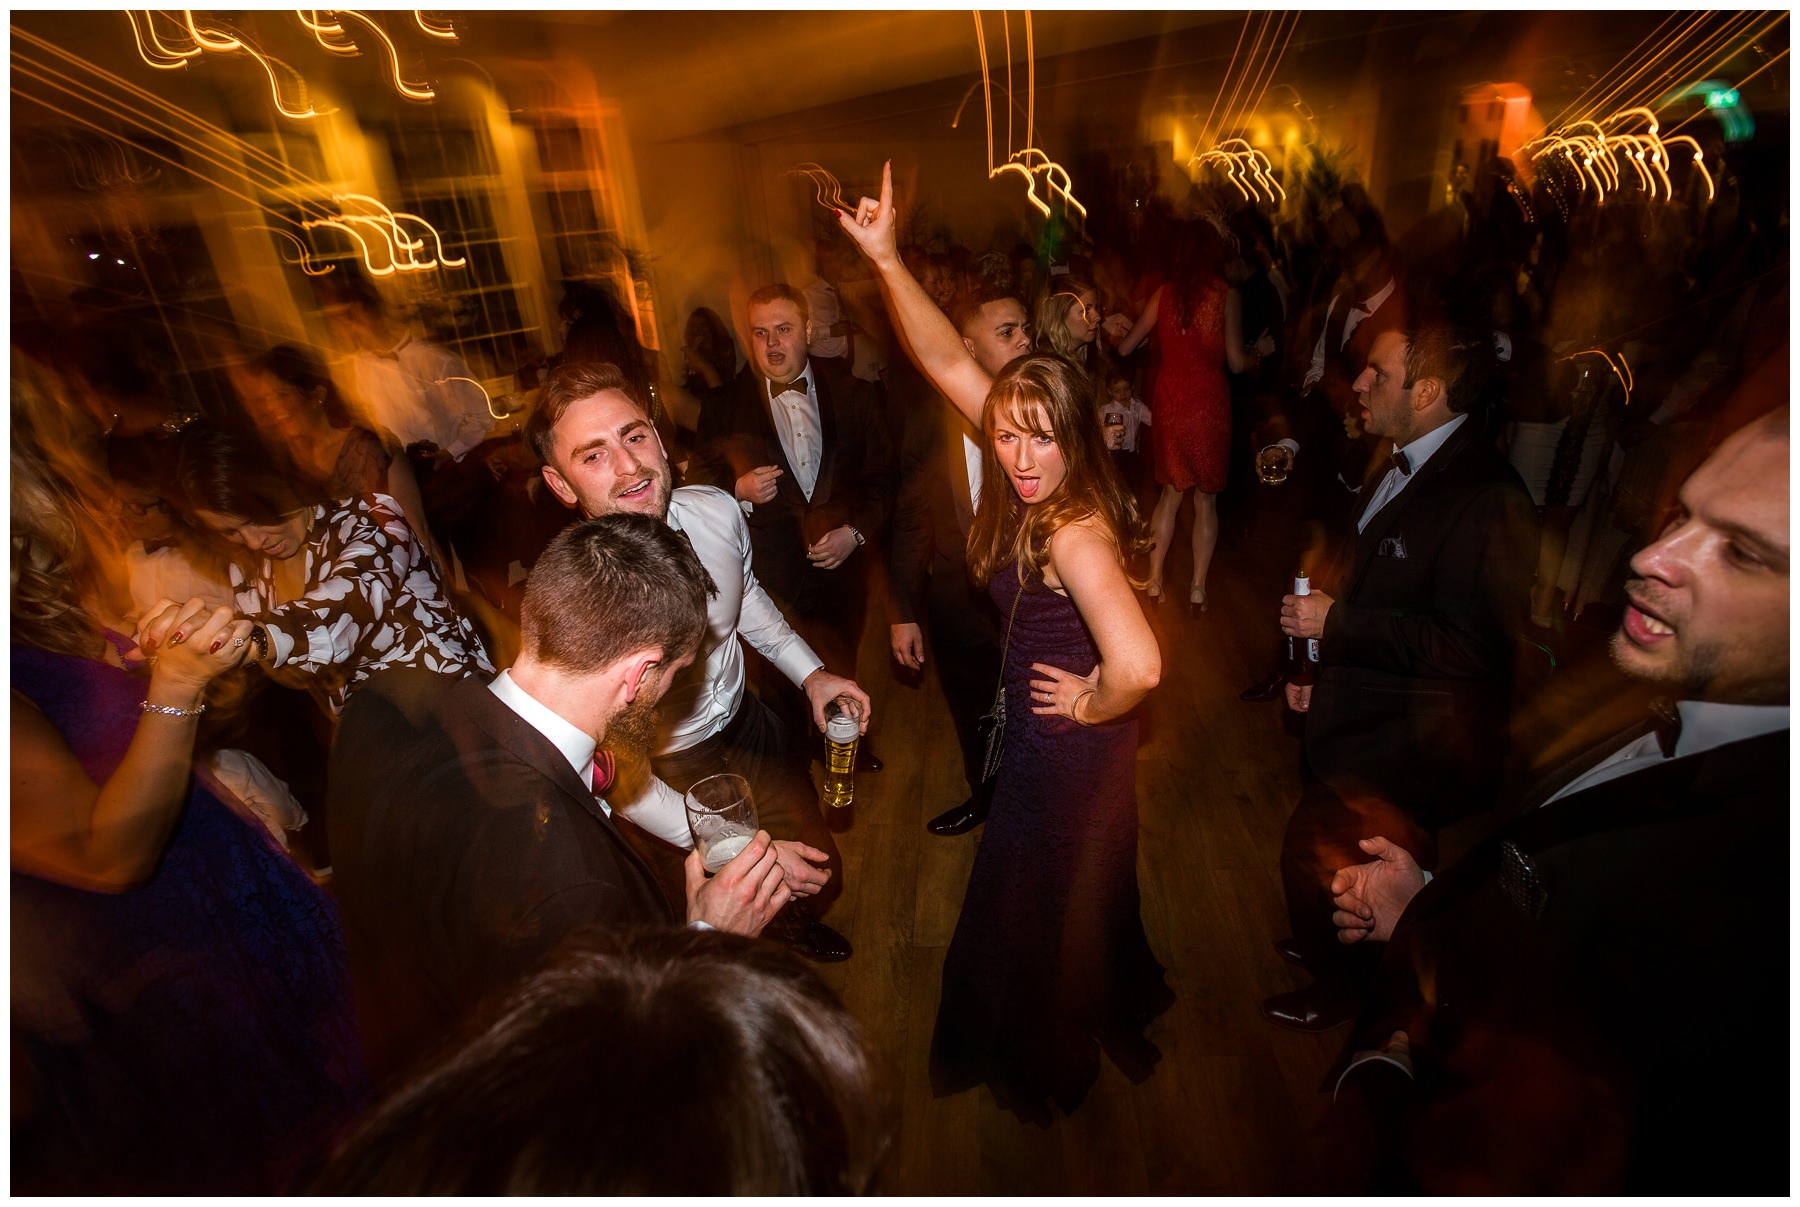 guest dancing with arm pointing in the air